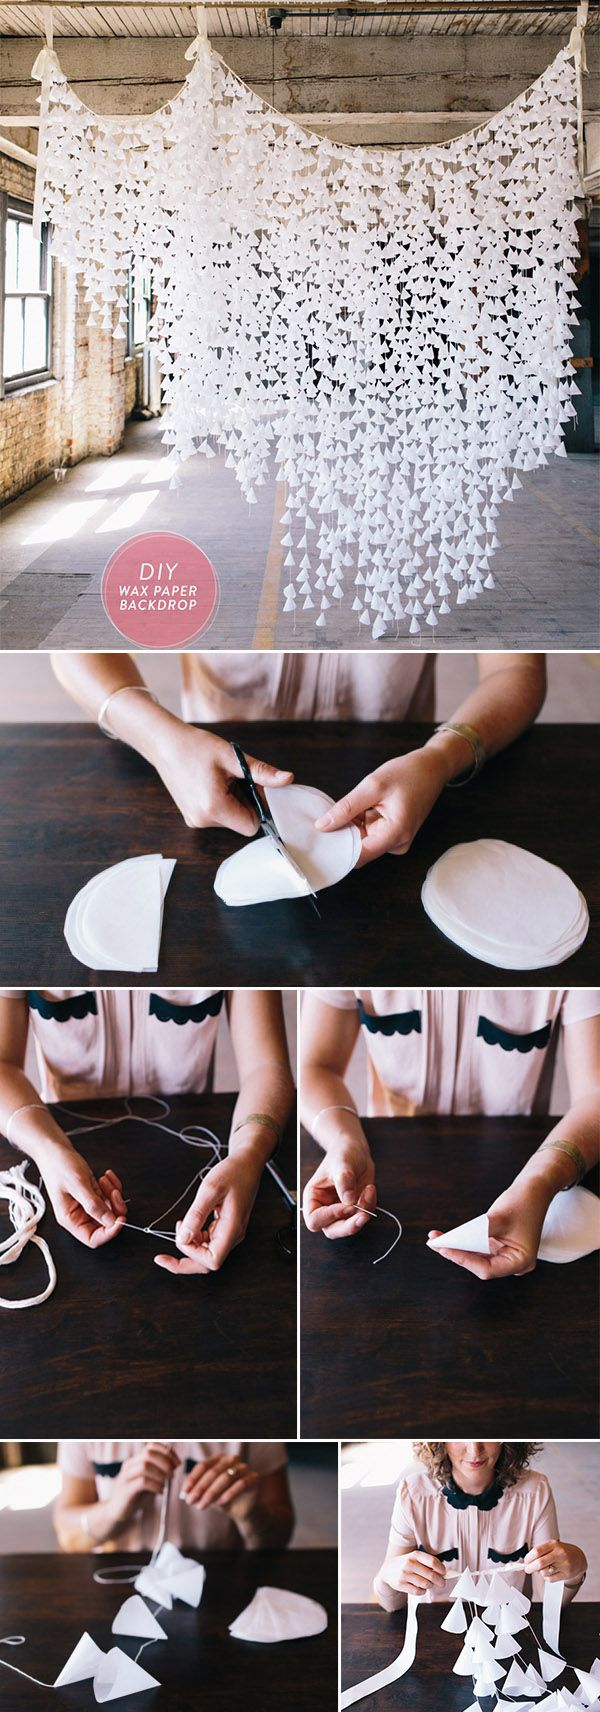 country rustic wax paper diy wedding backdrops